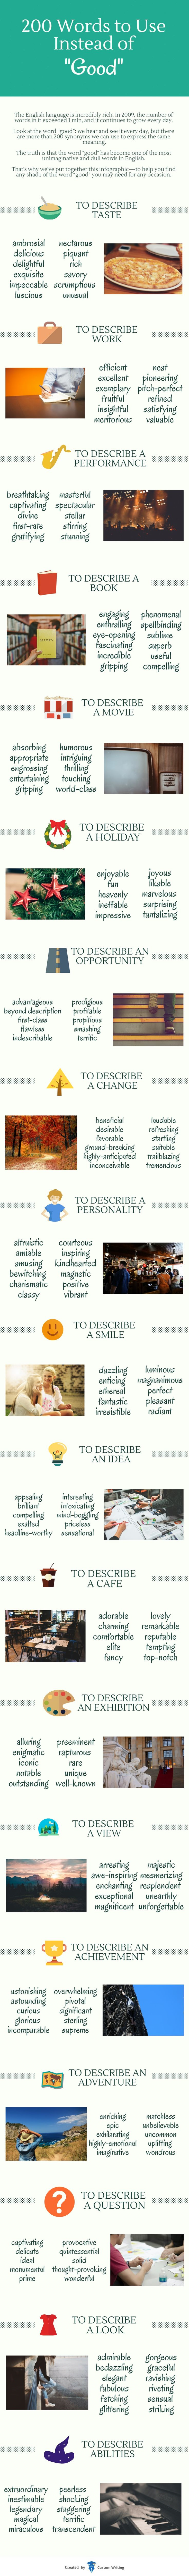 "200 Words to Use Instead of ""Good"" Infographic - http://elearninginfographics.com/200-words-to-use-instead-of-good/"